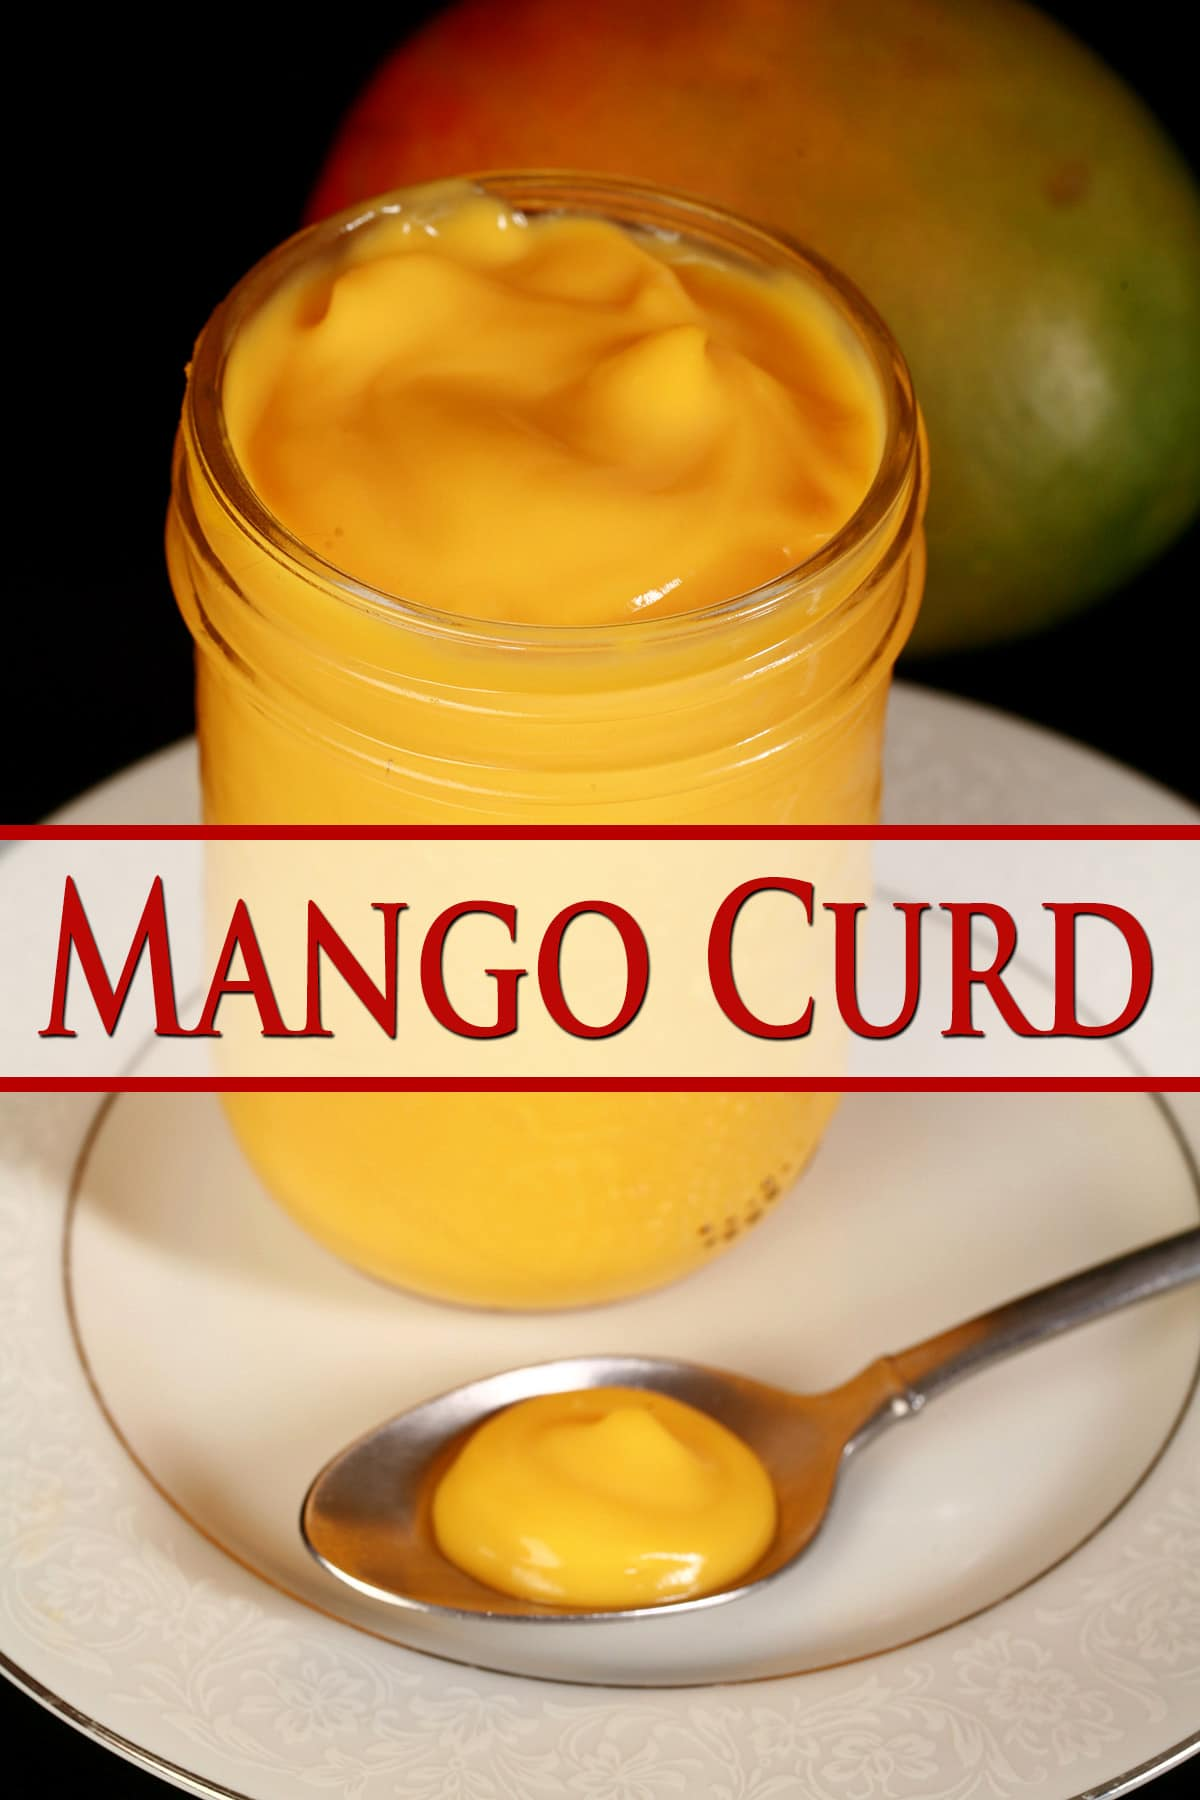 A jar of mango curd along with a spoon of the curd on a white plate.